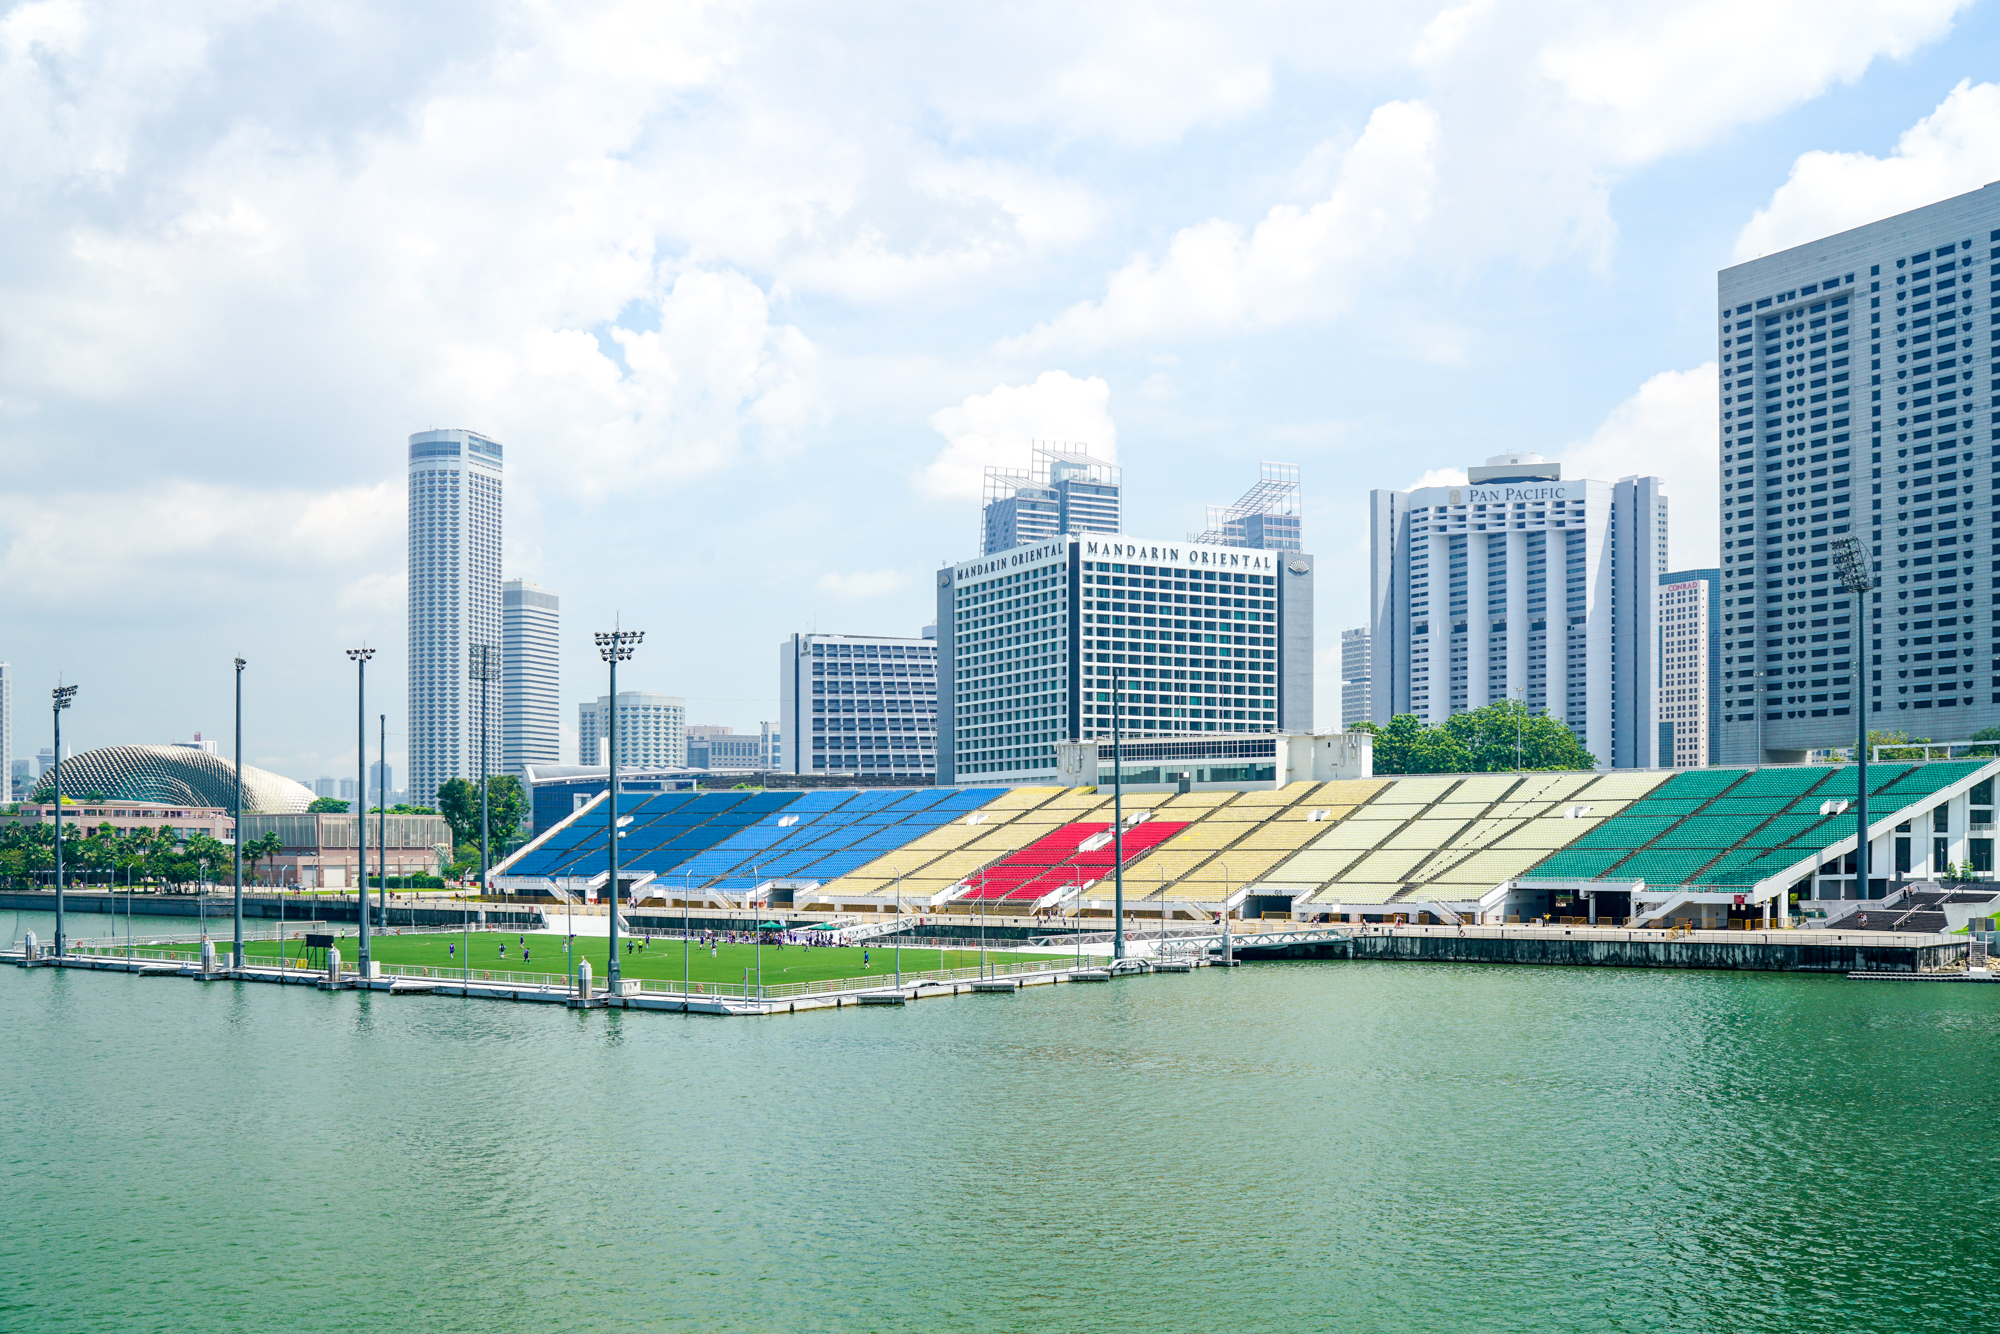 Floating soccer field in Singapore